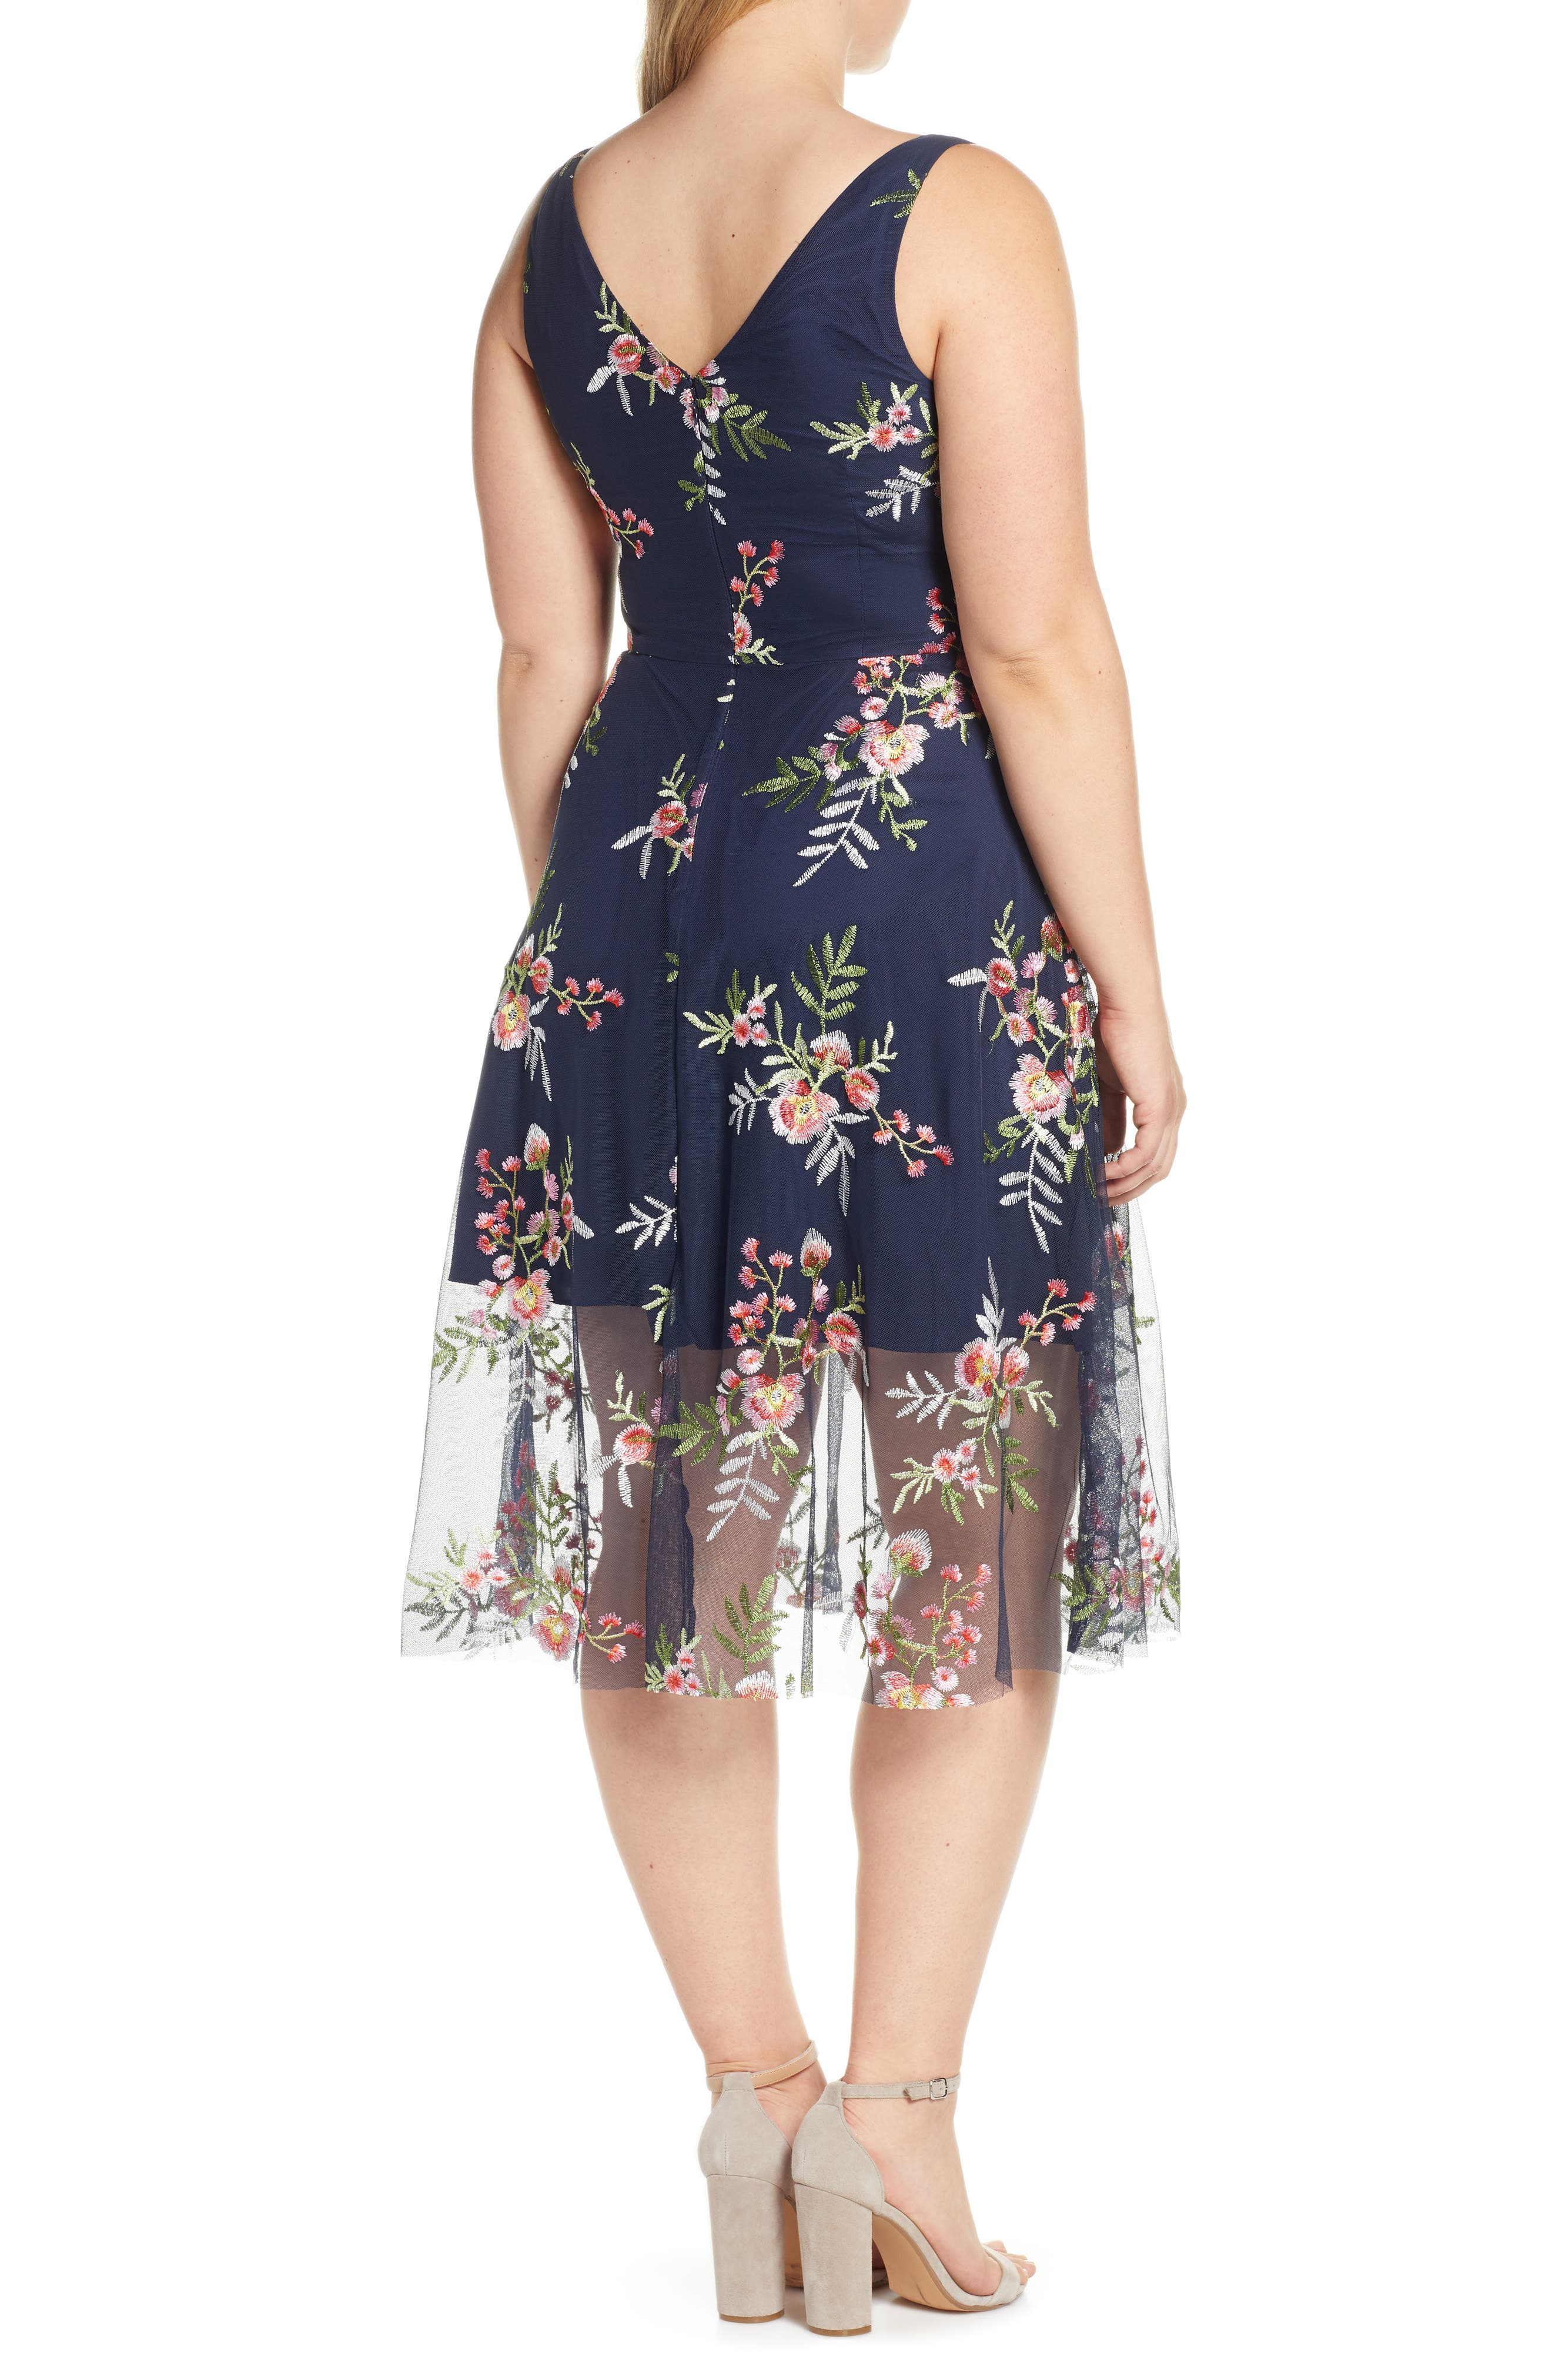 VINCE CAMUTO, Floral Embroidered Mesh Midi Dress, Alternate thumbnail 9, color, NAVY/ MULTI